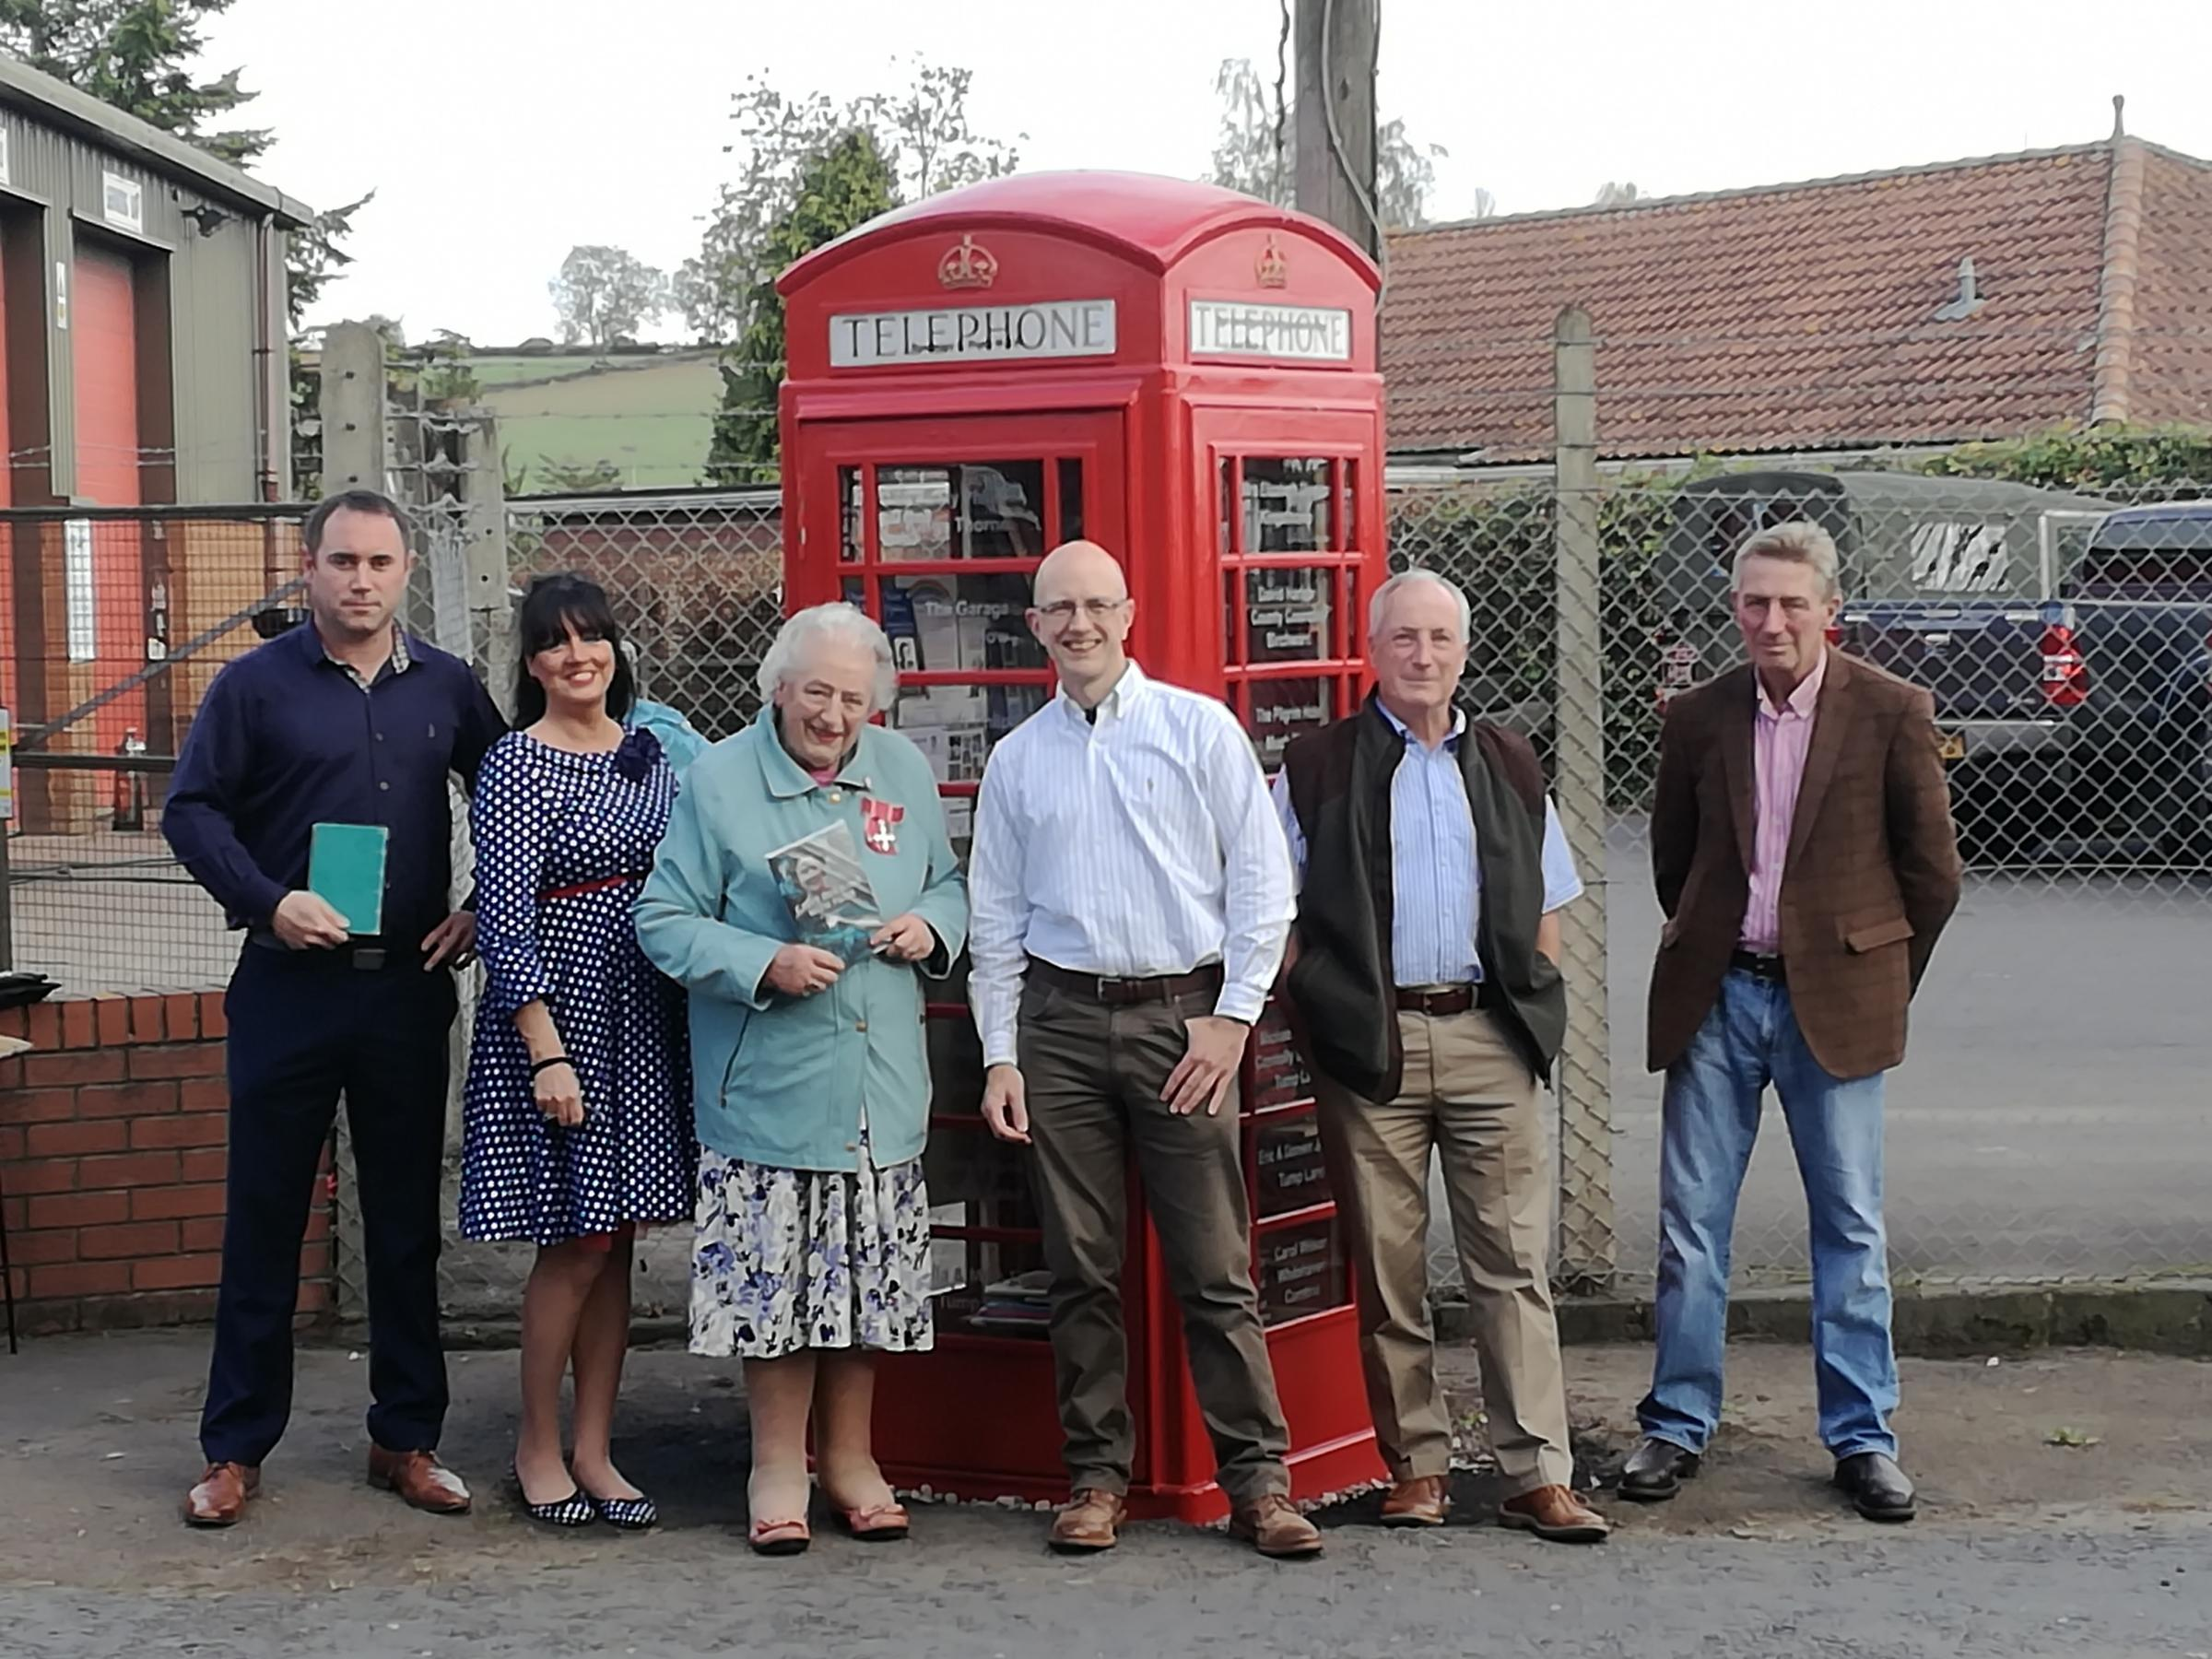 At the opening of the Wormelow telephone box library, some of those present were, from left, Trevor Forrester, Ruby Mann, Rosemary Rigby, John Prime, Andy Mann and Cliff Hiscox.